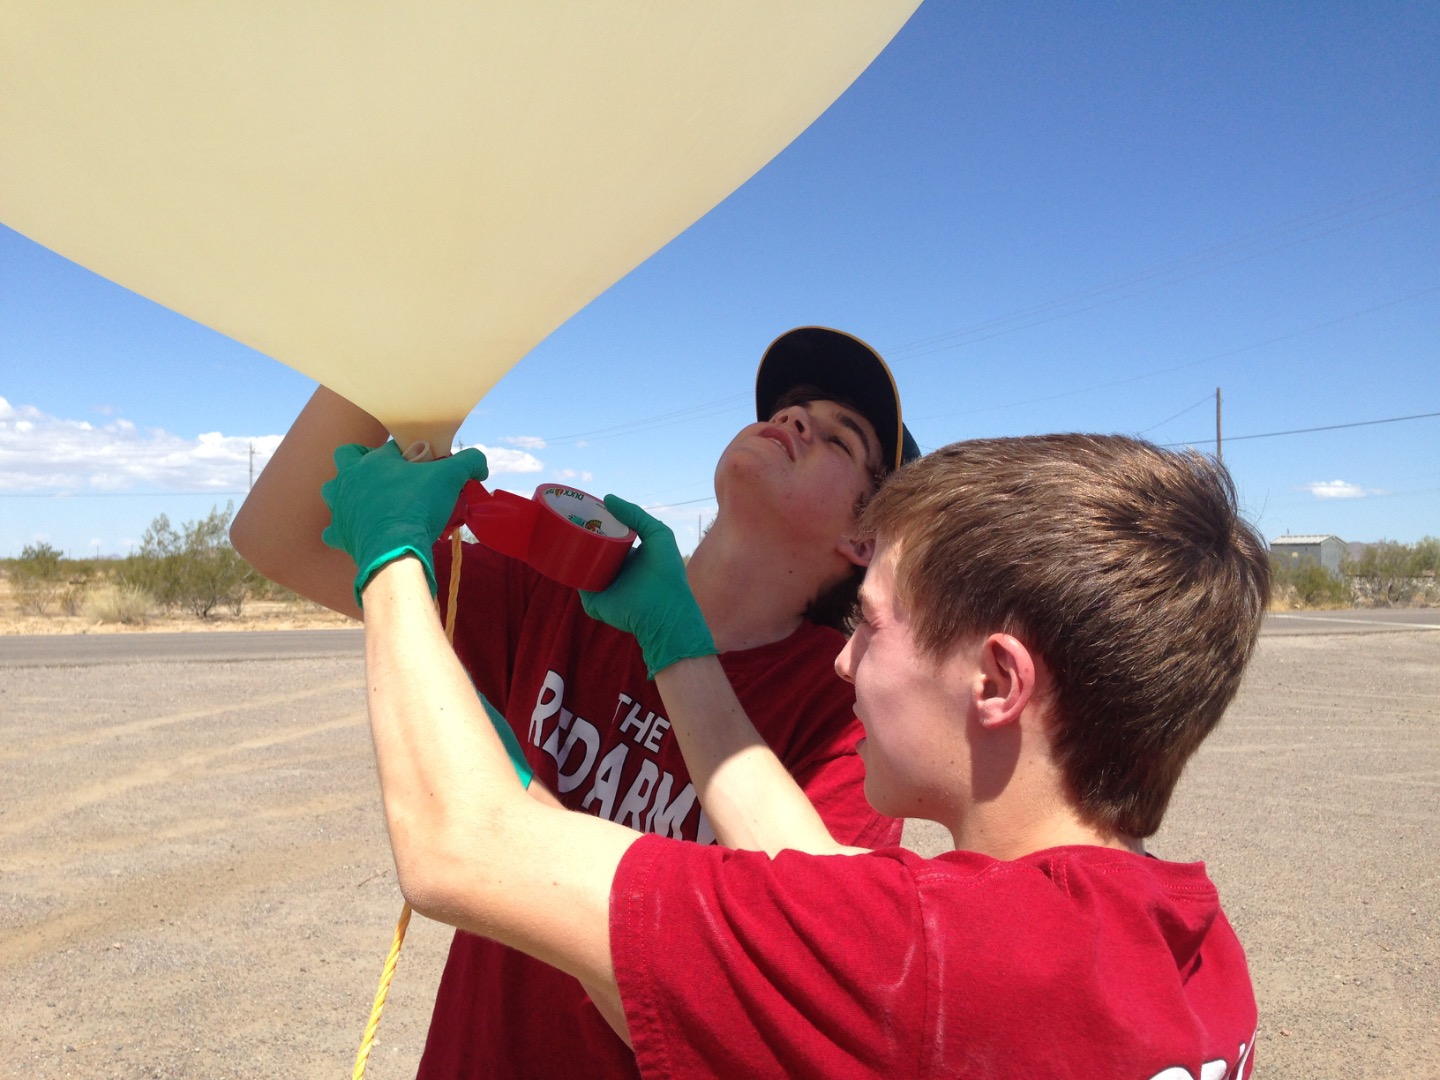 Picture of Attaching the Rope to the Cooler, Parachute and Balloon